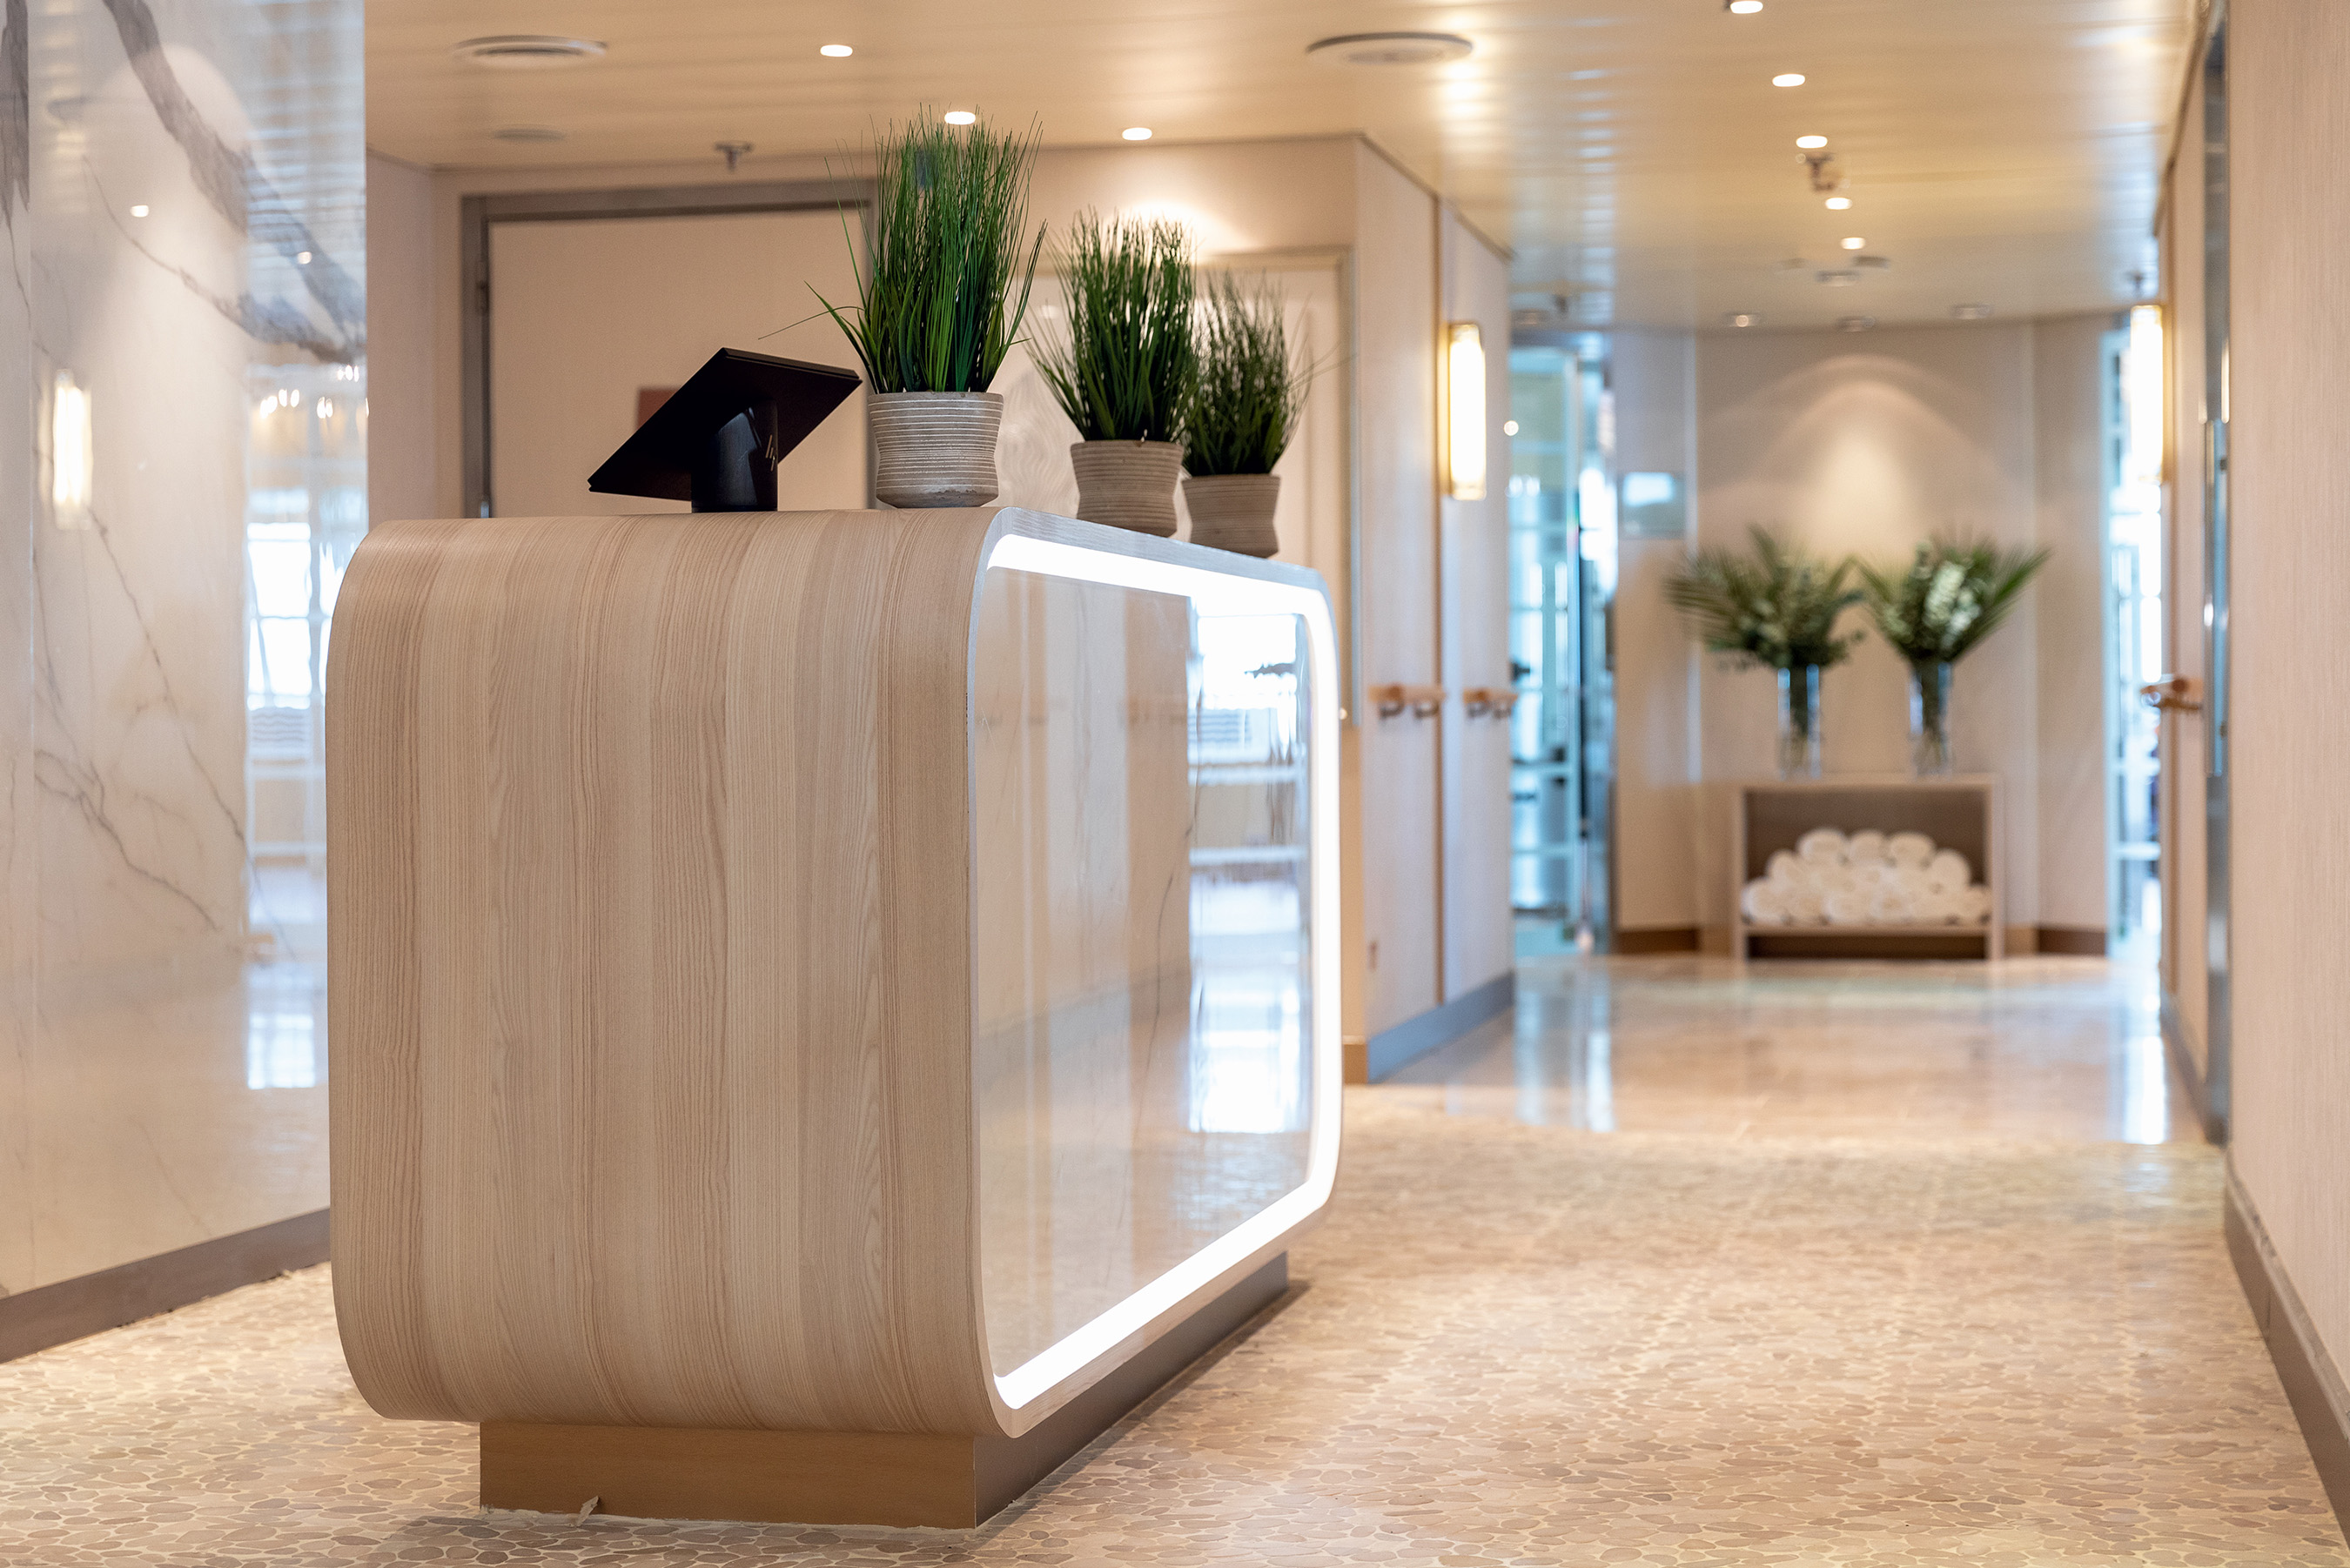 Serene Spa & Wellness will offer exclusive destination-inspired treatments to Regent Seven Seas Cruises guests.